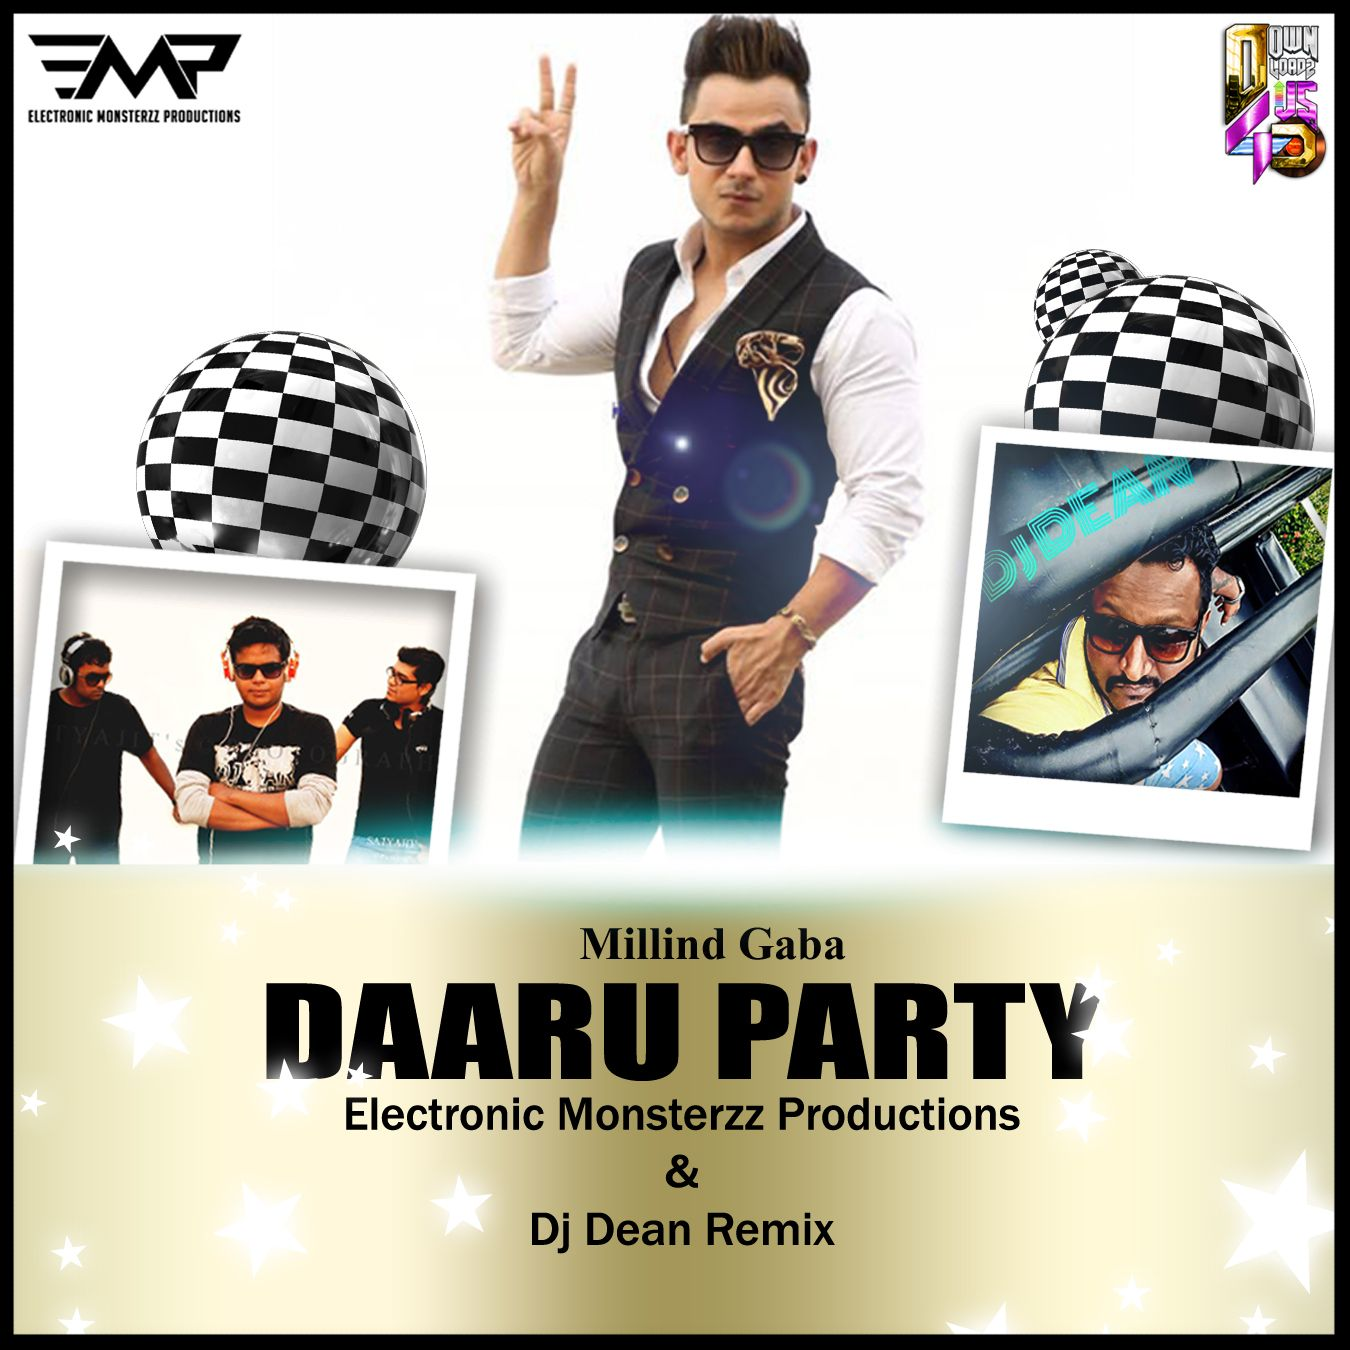 Download Song Daroo Party By Pagalworld: Electronic Monsterzz Productions & DJ Dean